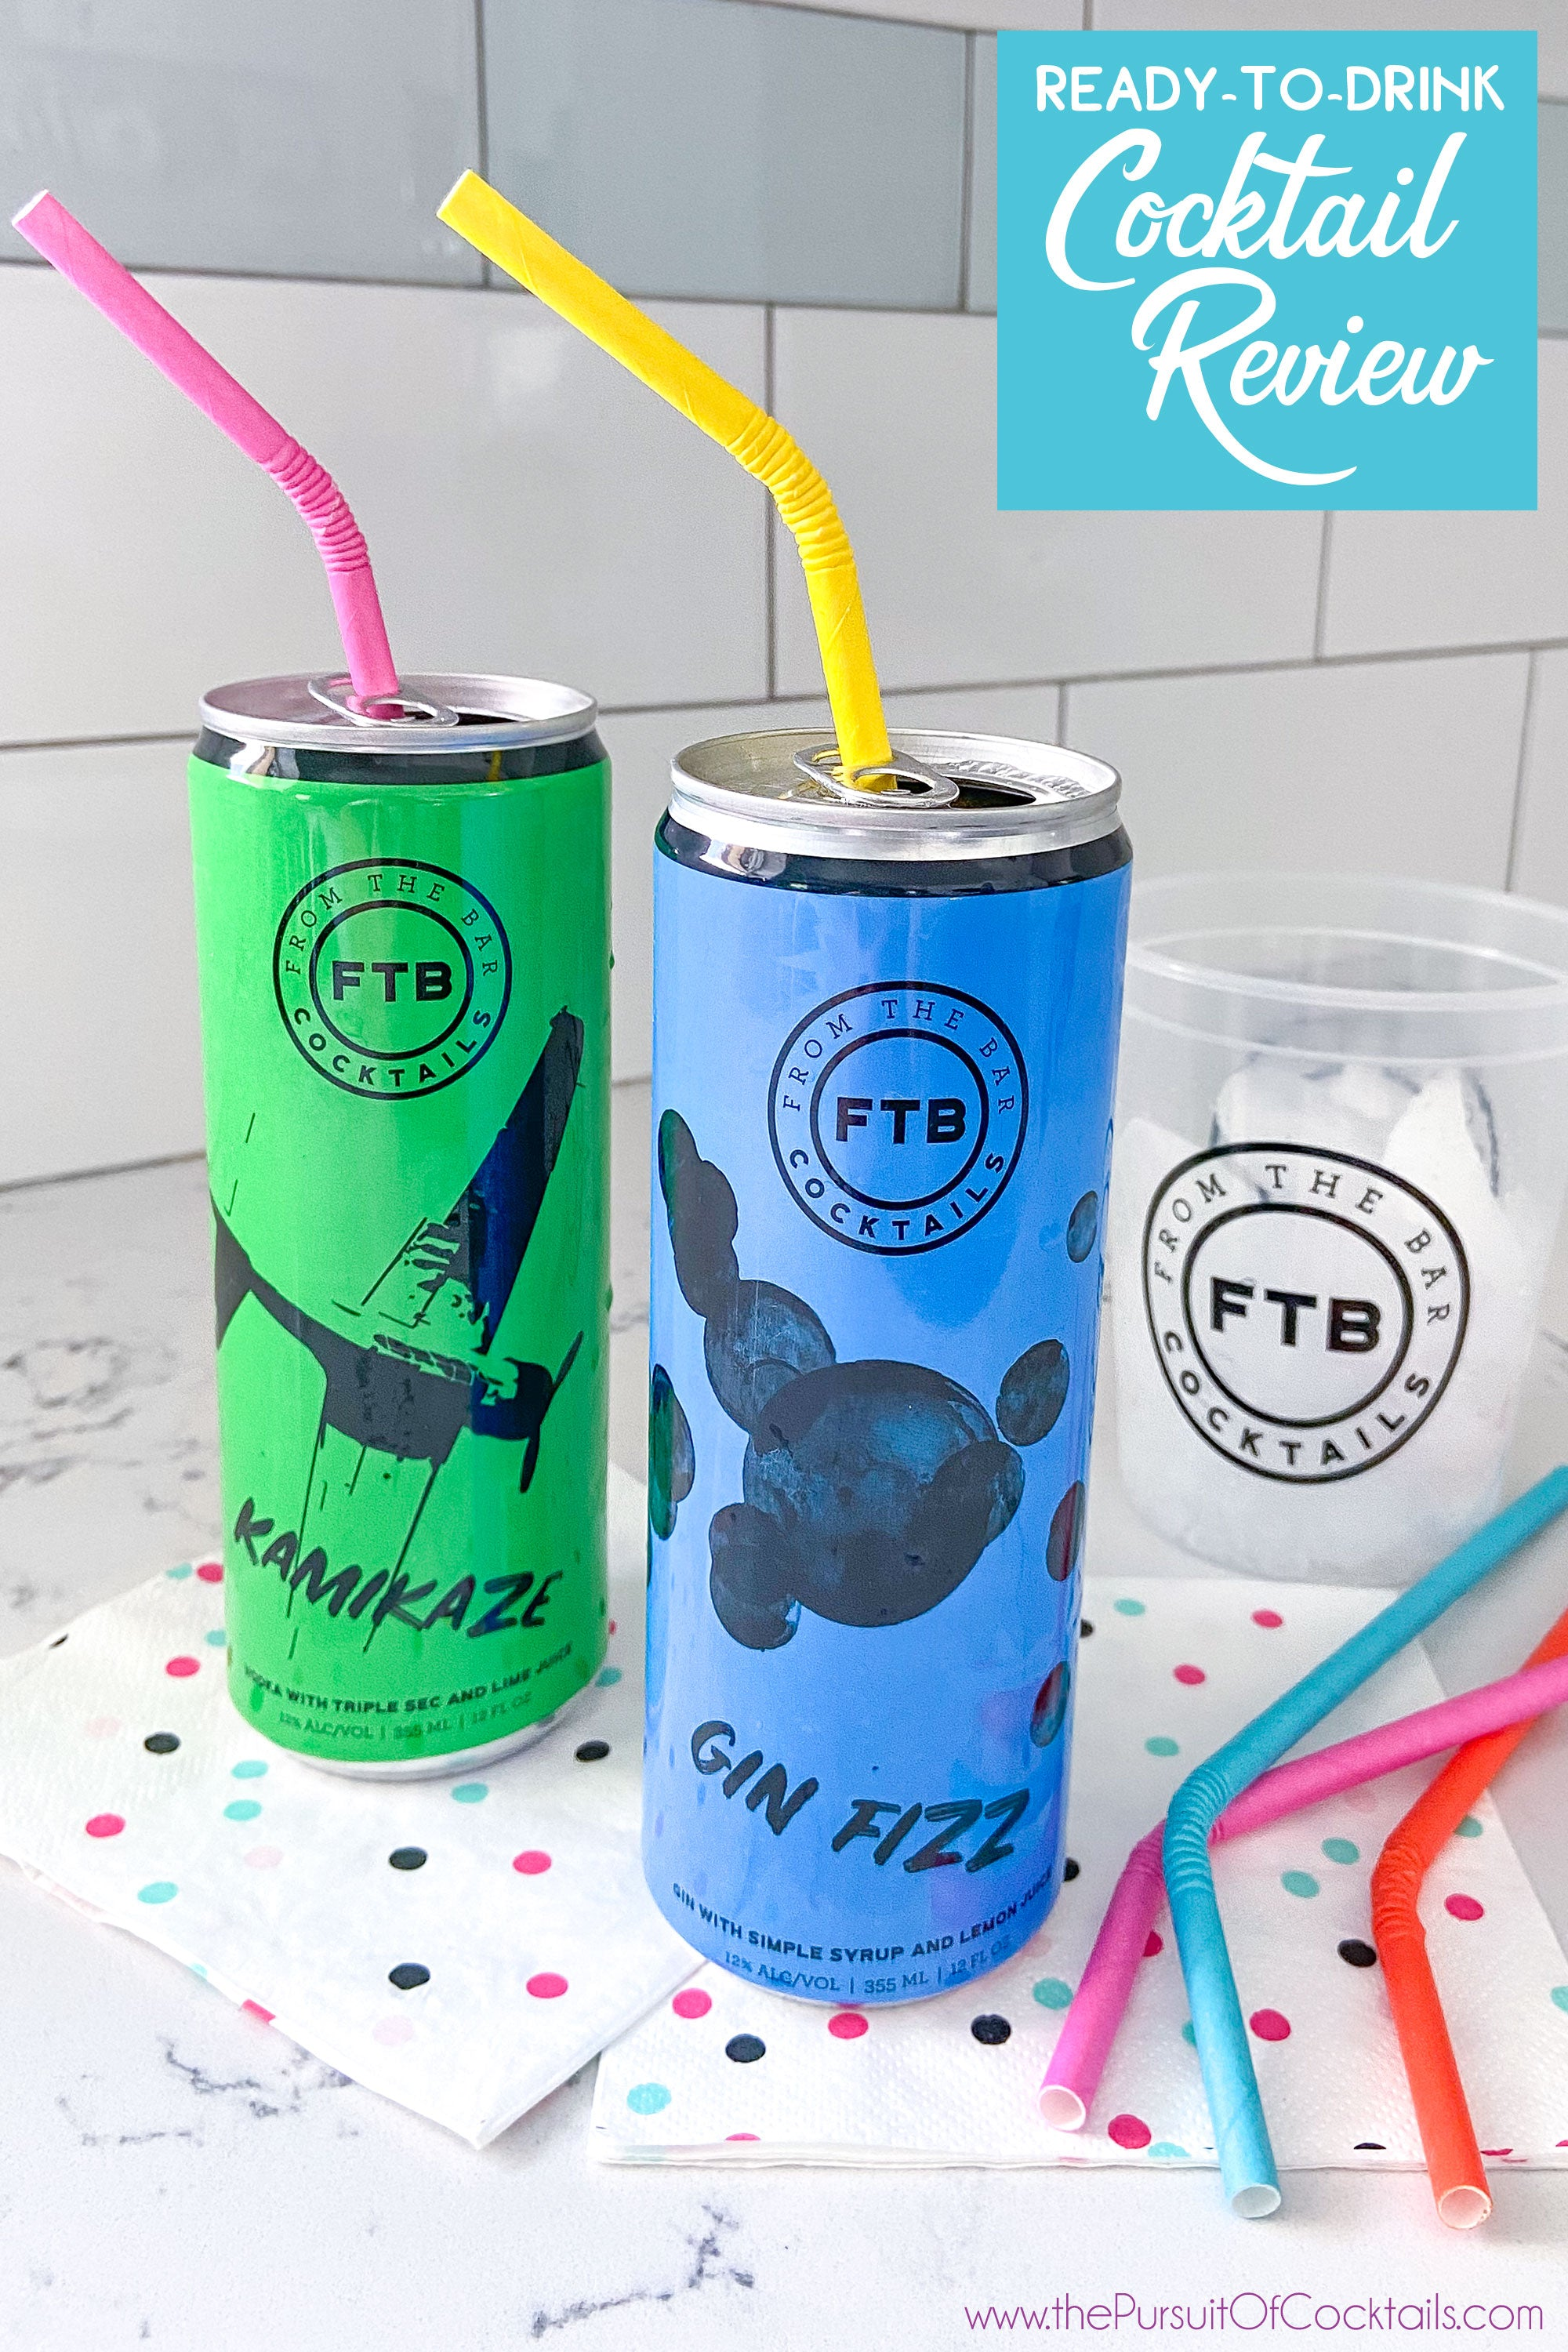 FTB canned cocktail review by The Pursuit of Cocktails